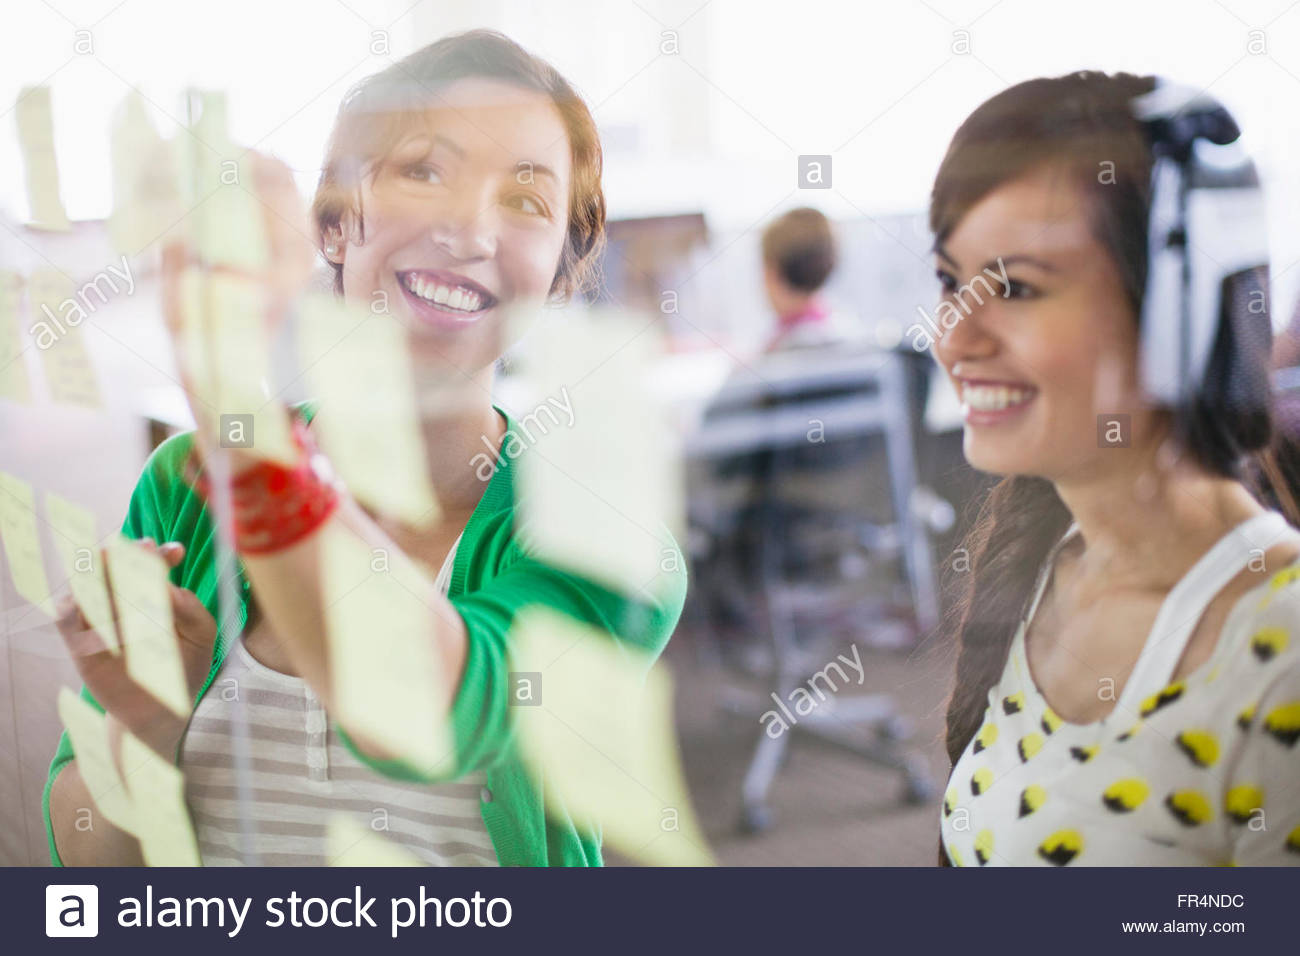 young businesswoman reviewing flow chart on glass wall - Stock Image